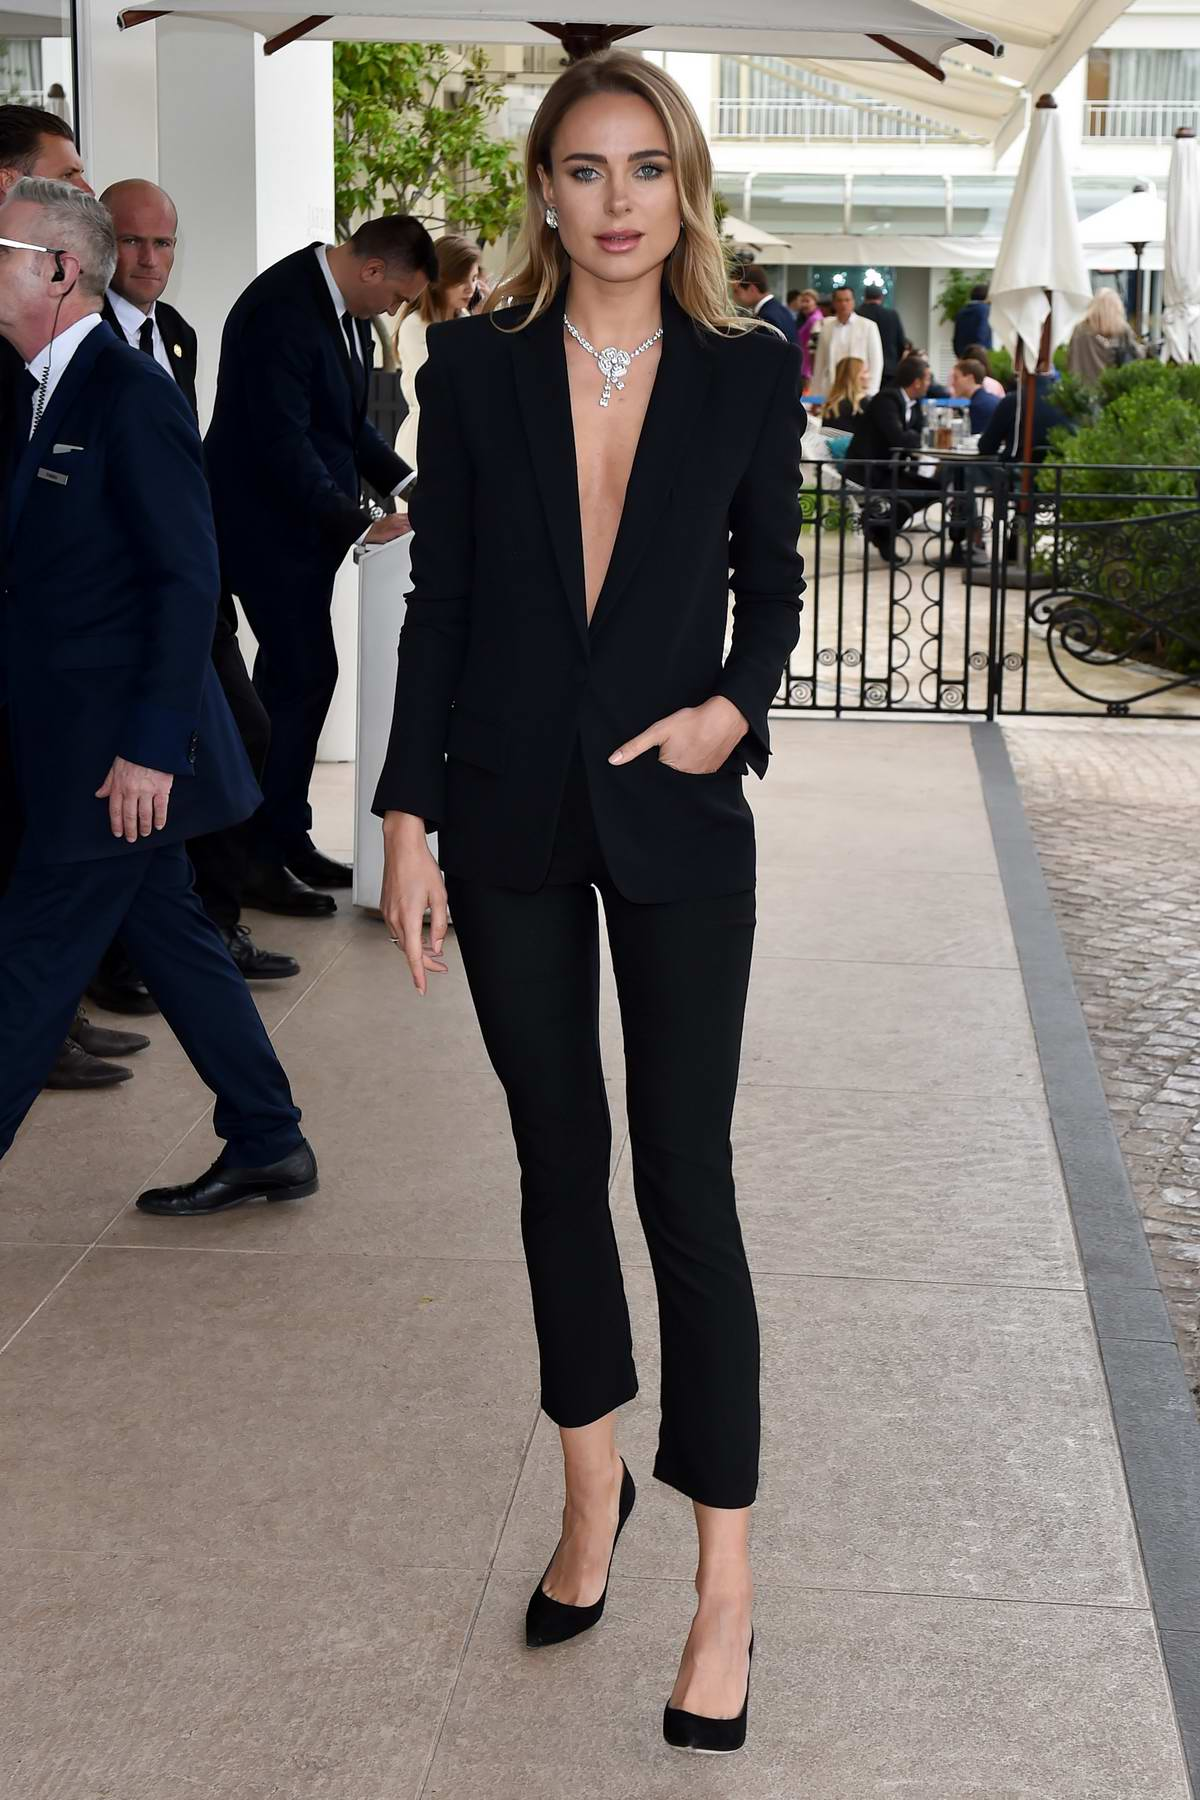 Kimberley Garner looks dapper in a black suit as she steps out during the 72nd Cannes Film Festival in Cannes, France